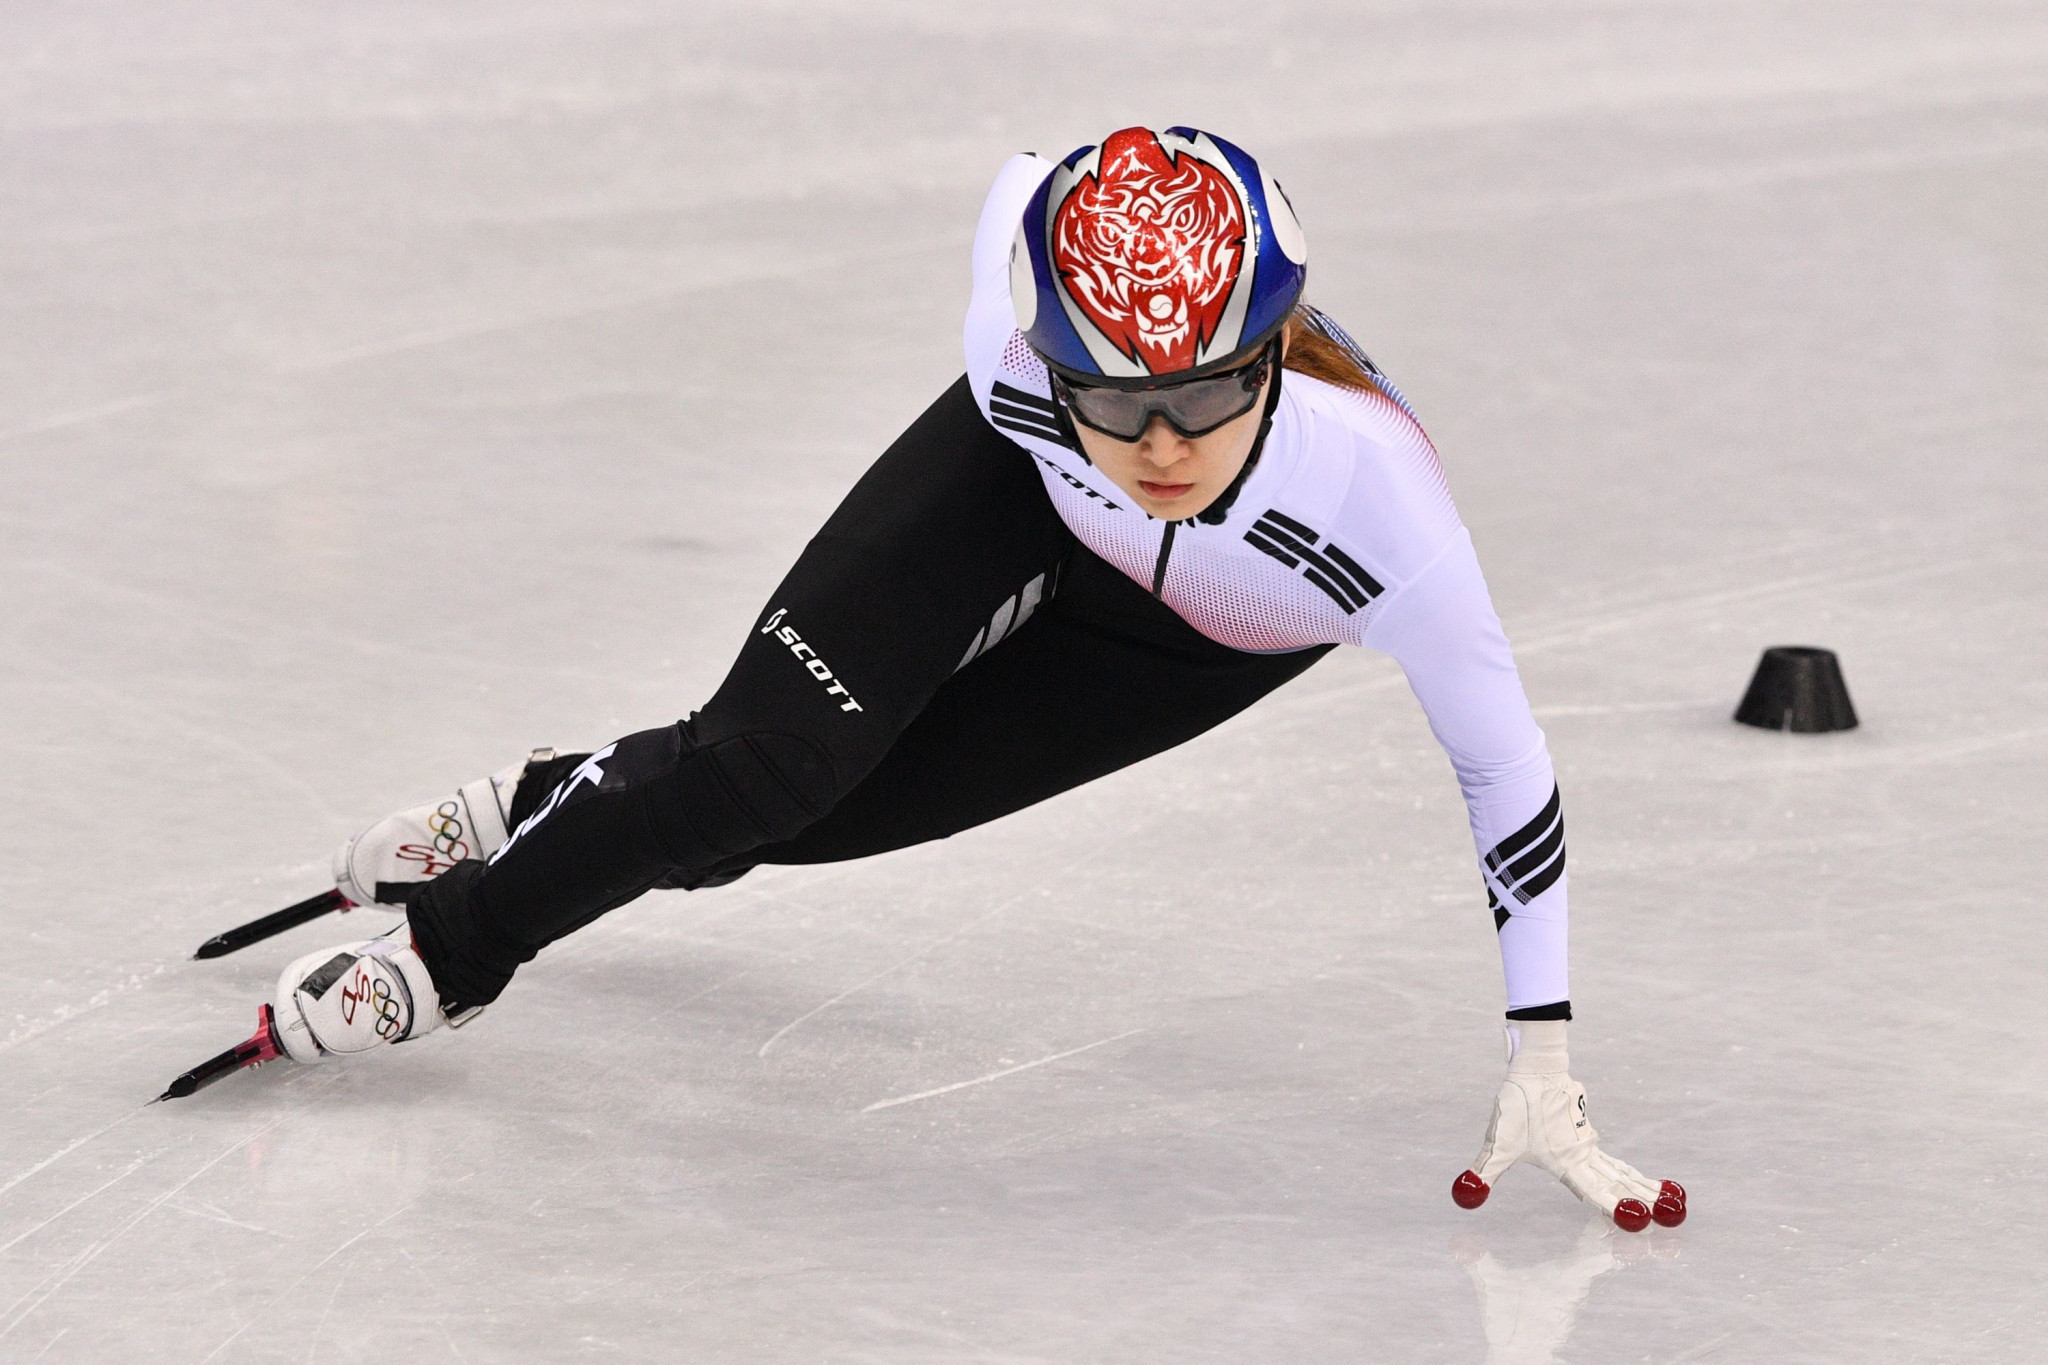 South Korea's Choi claims double gold at World Short Track Speed Skating Championships